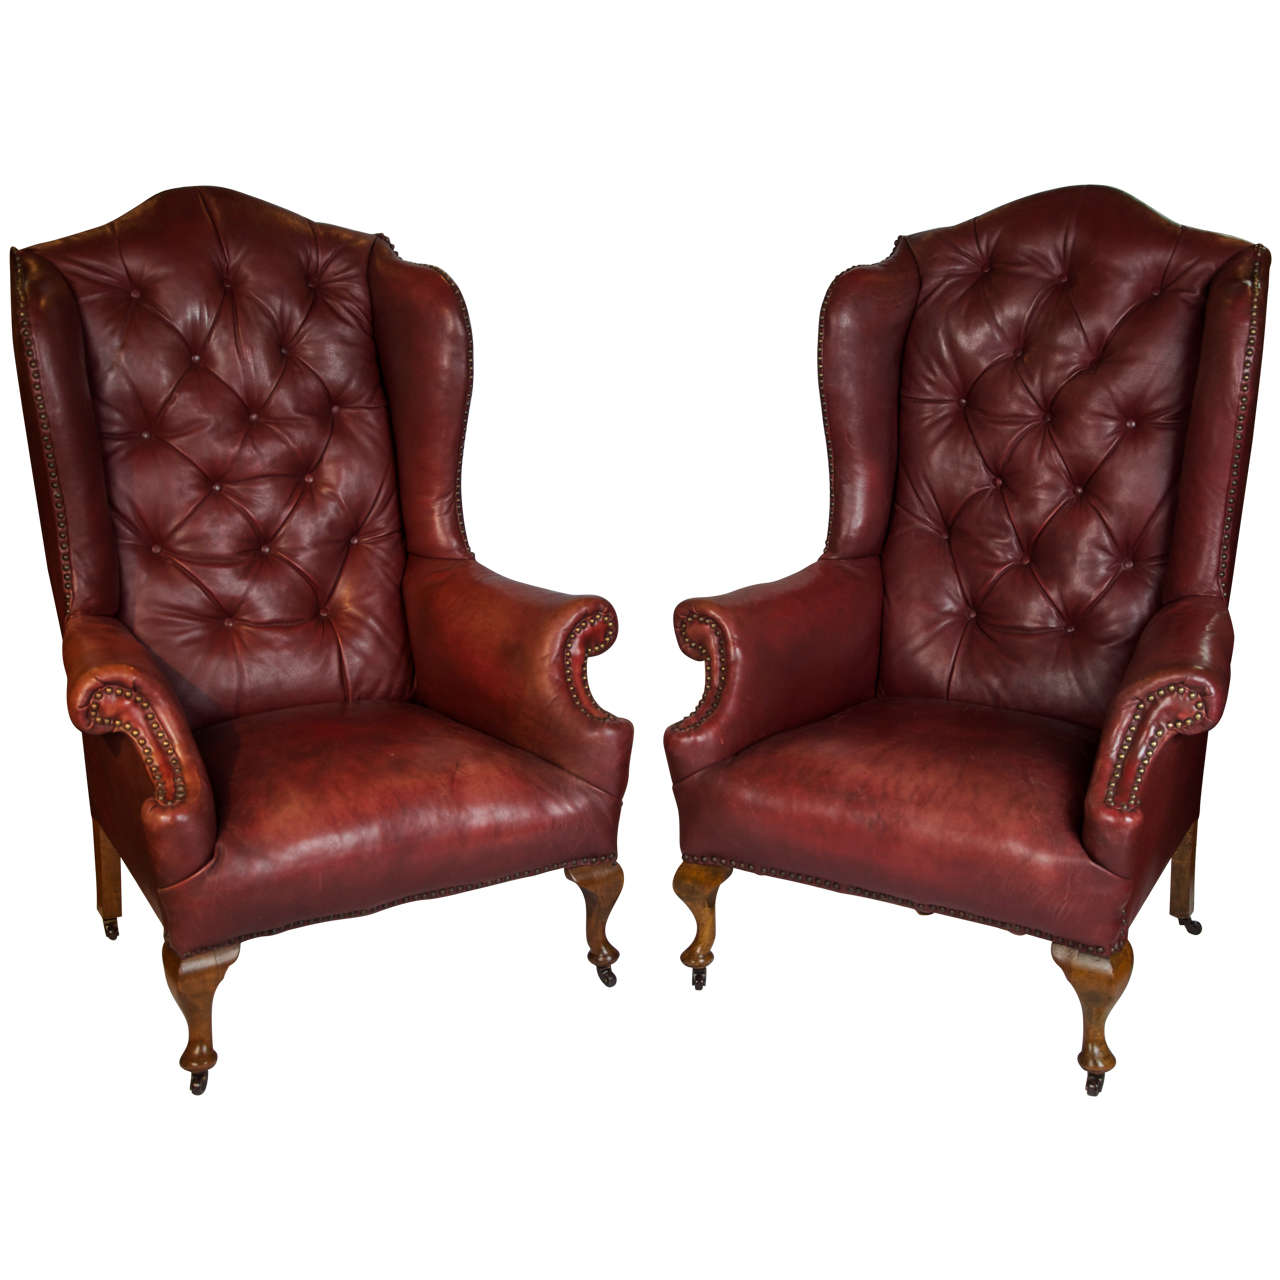 Pair of Early 20th Century Red Leather Wing Back Chairs at 1stdibs